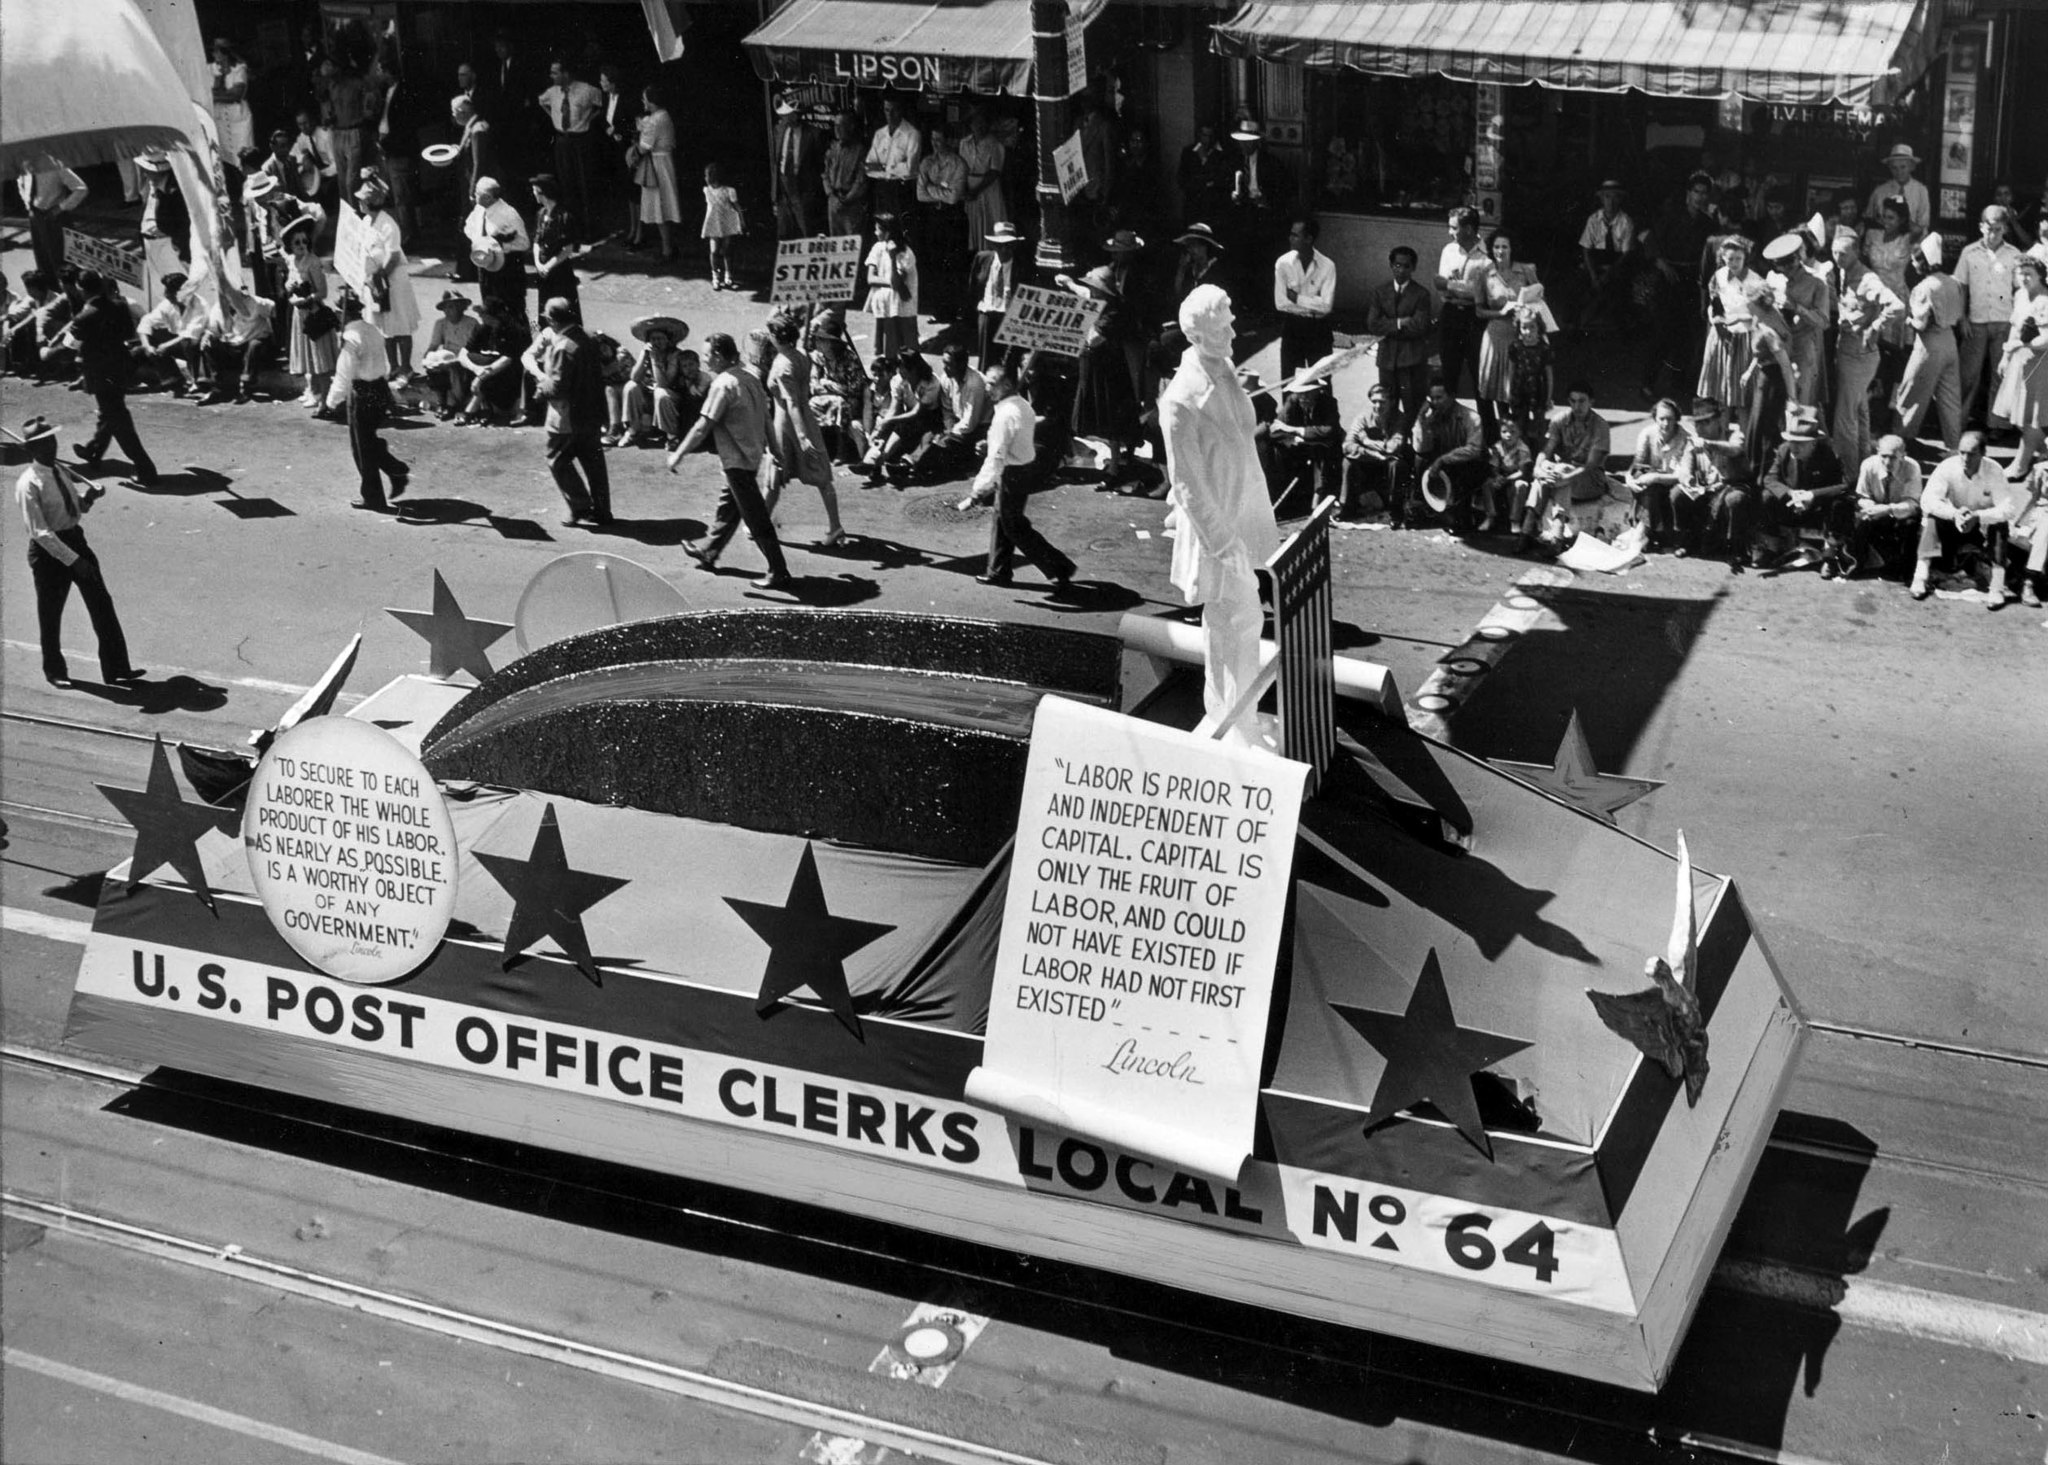 Sep. 1, 1941: Letter carriers and postal clerks had both marching units and float in the Labor Day p